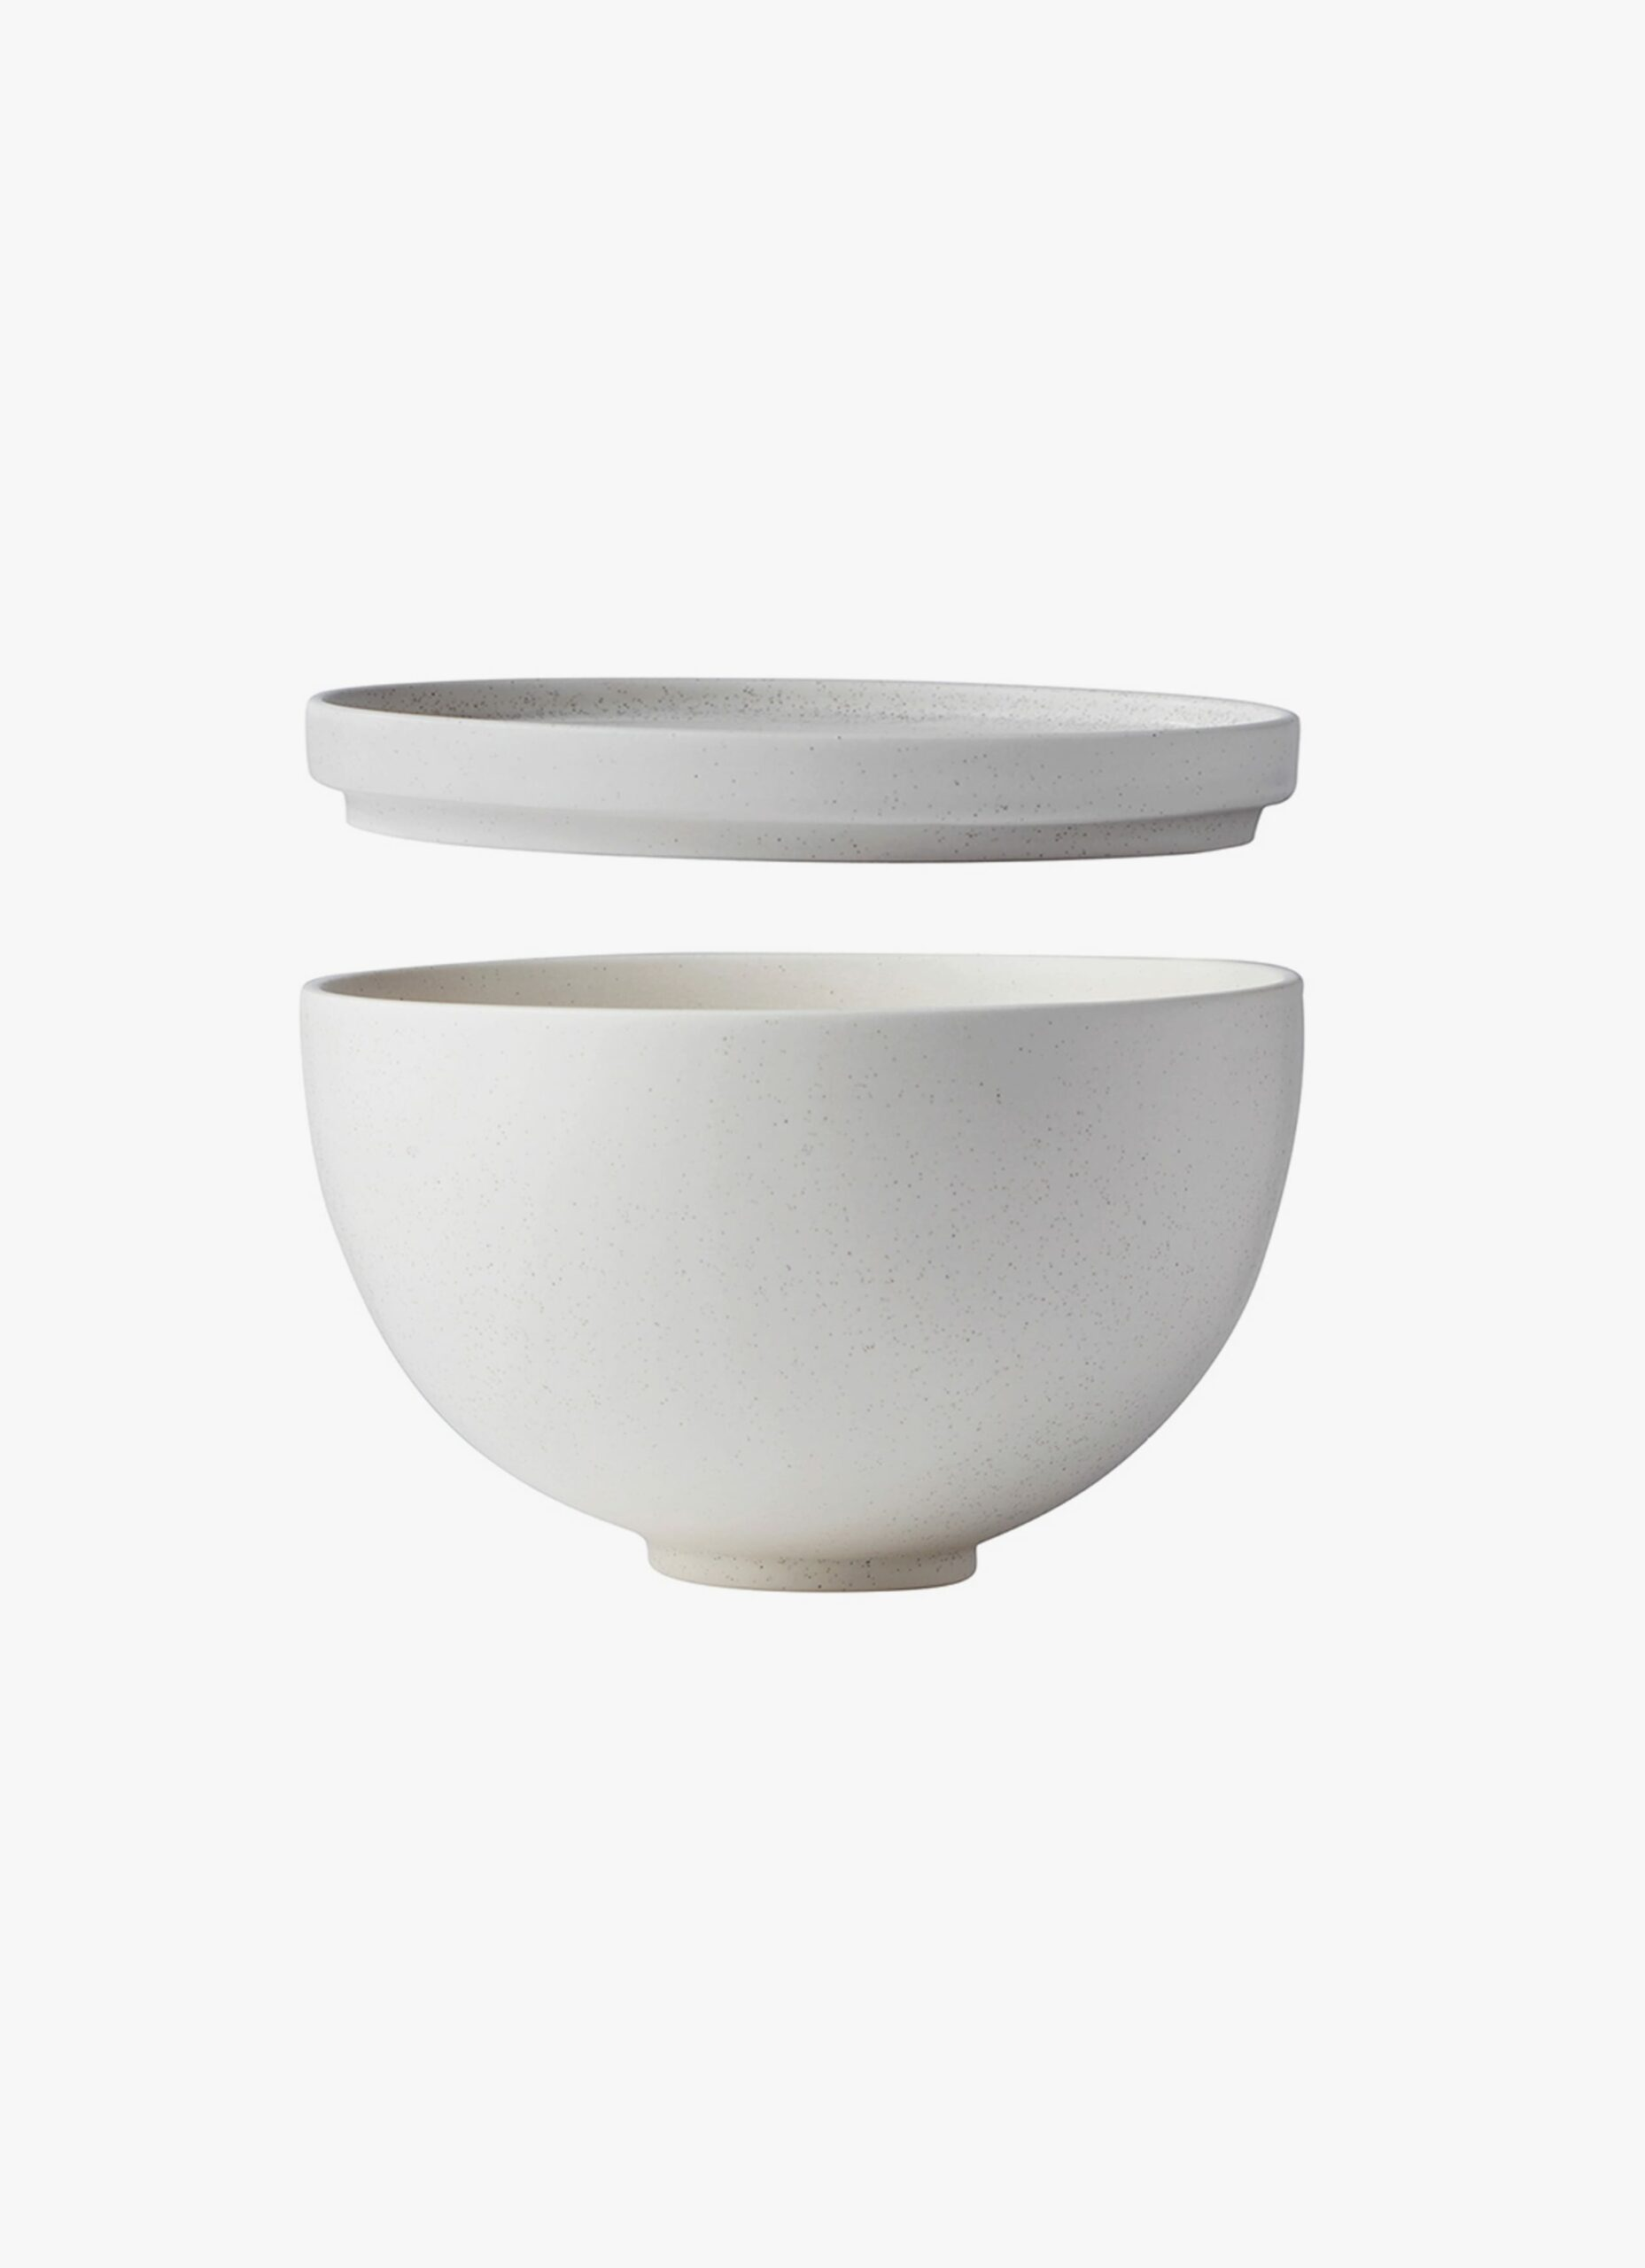 Kristina Dam Studio - Setomono Bowl Set - Stoneware - off-white - L